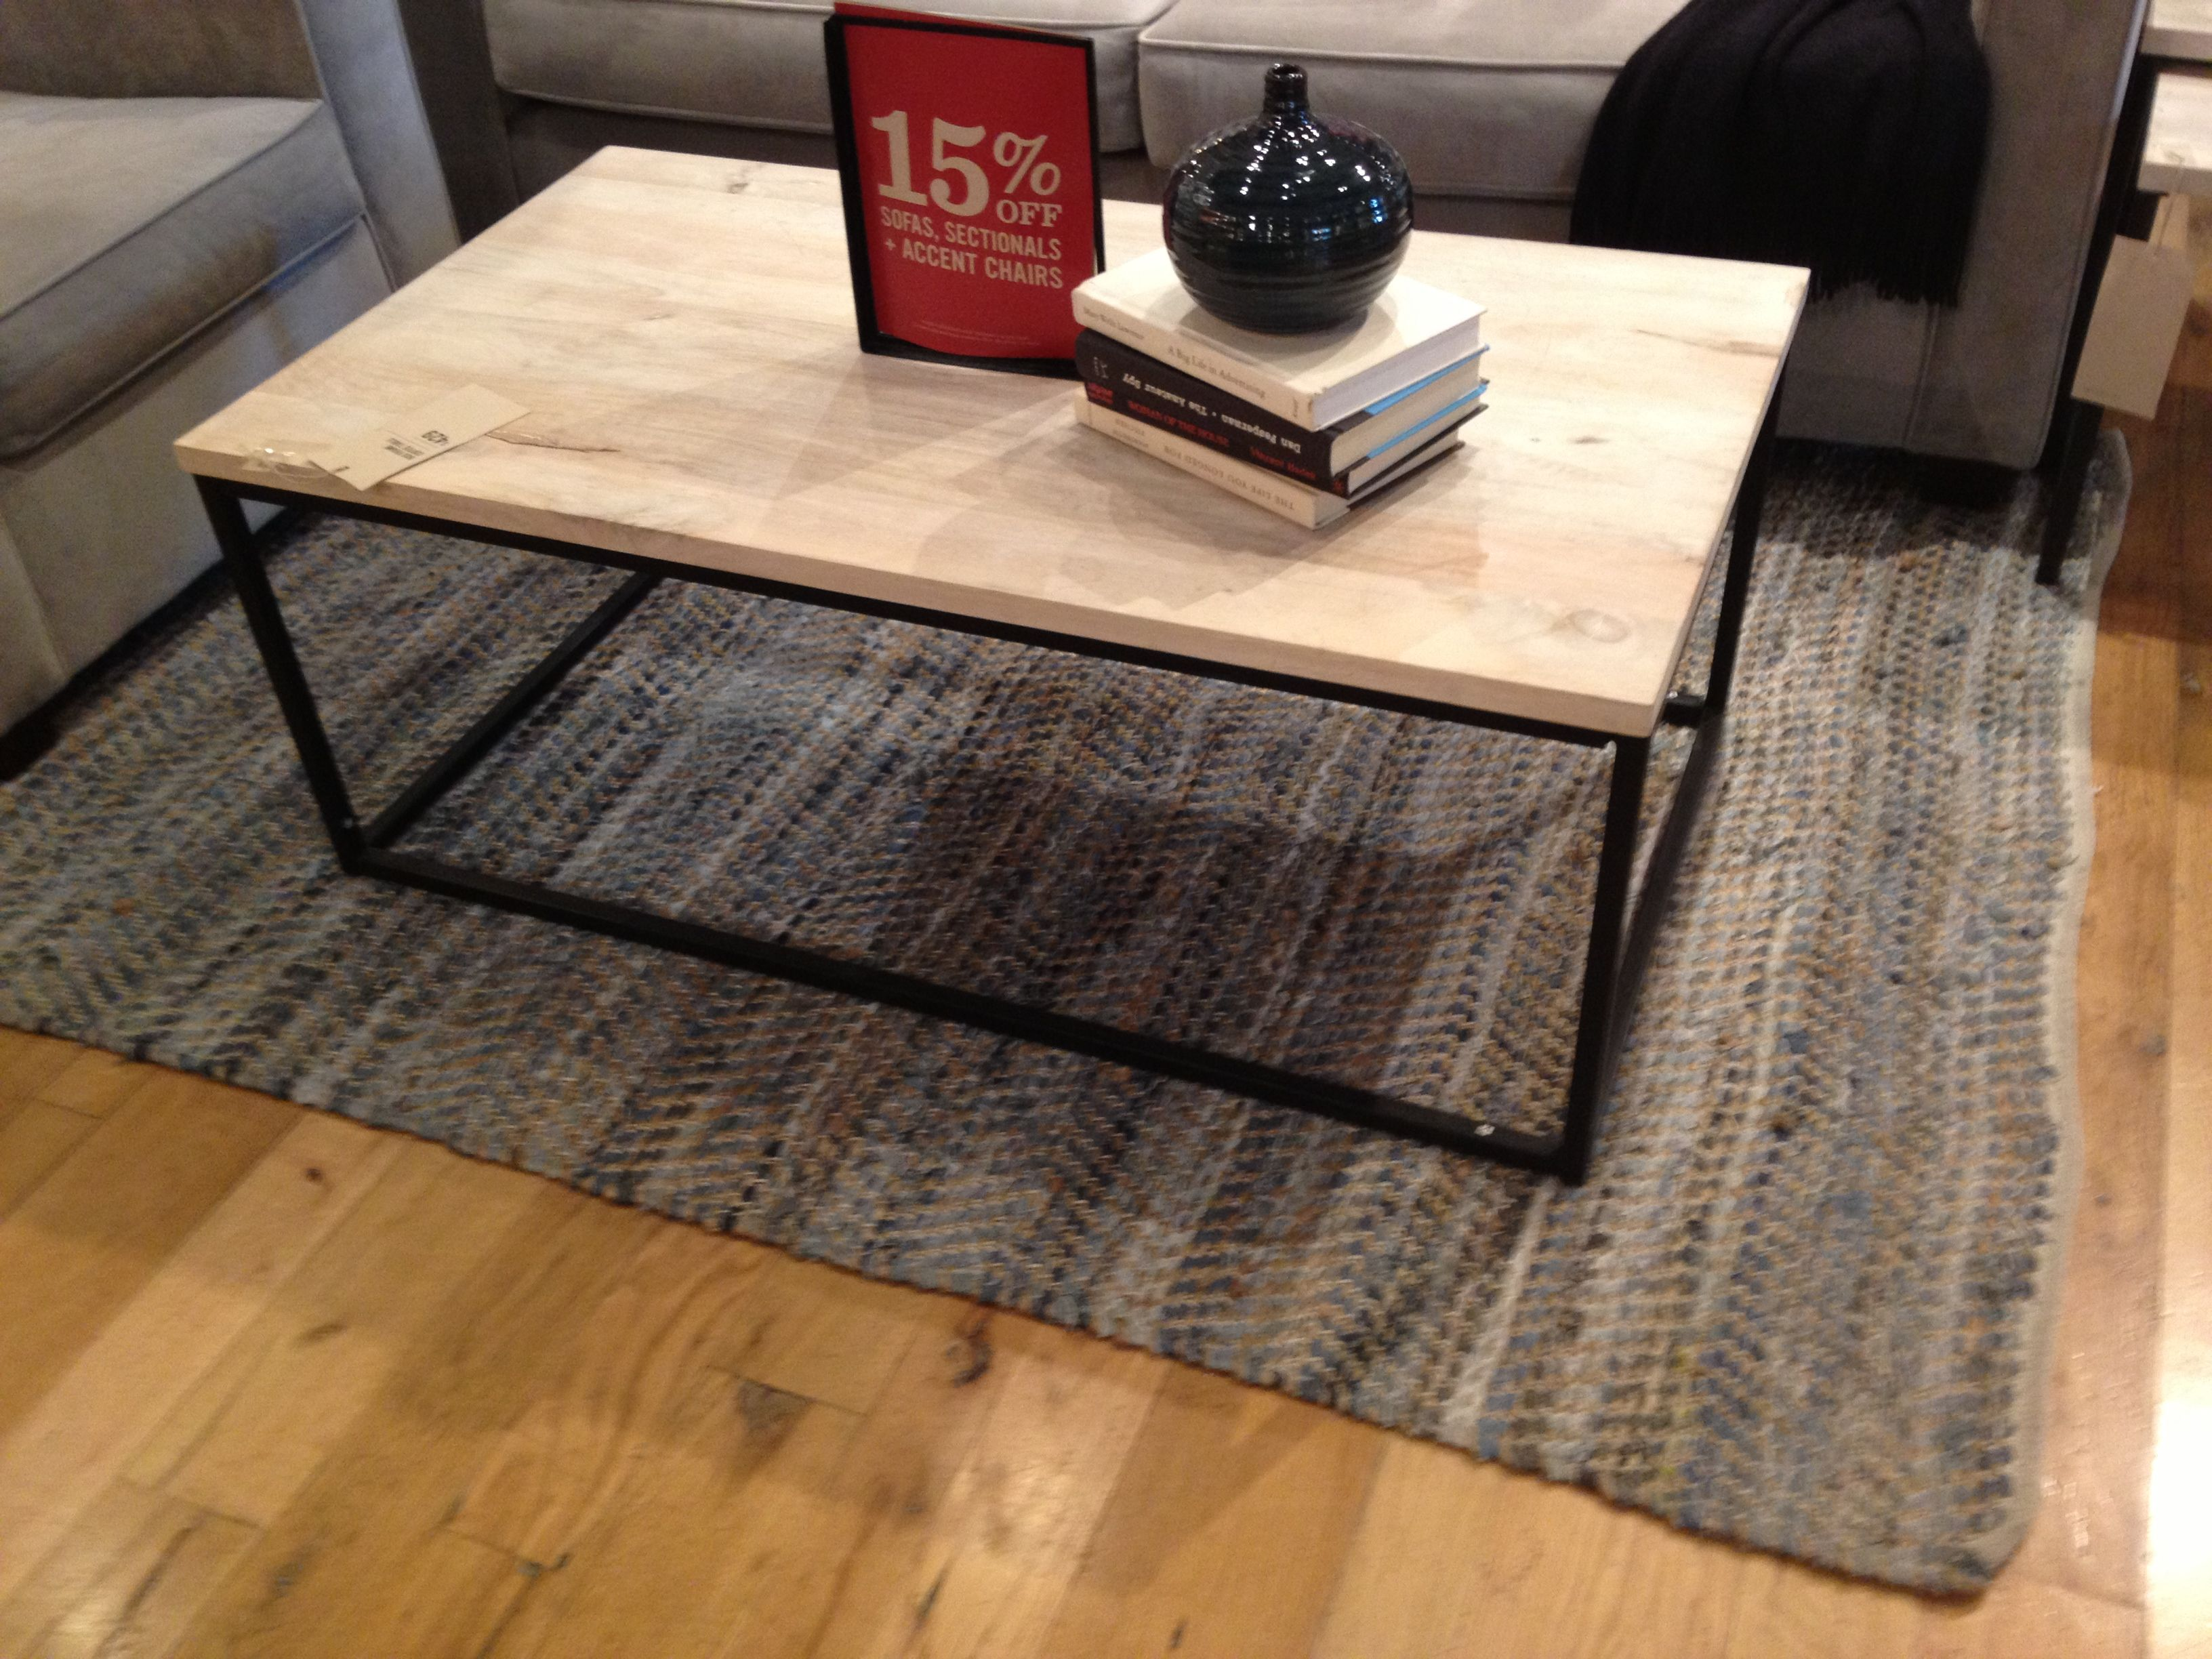 For the library west elm box frame coffee table 428 44 w x